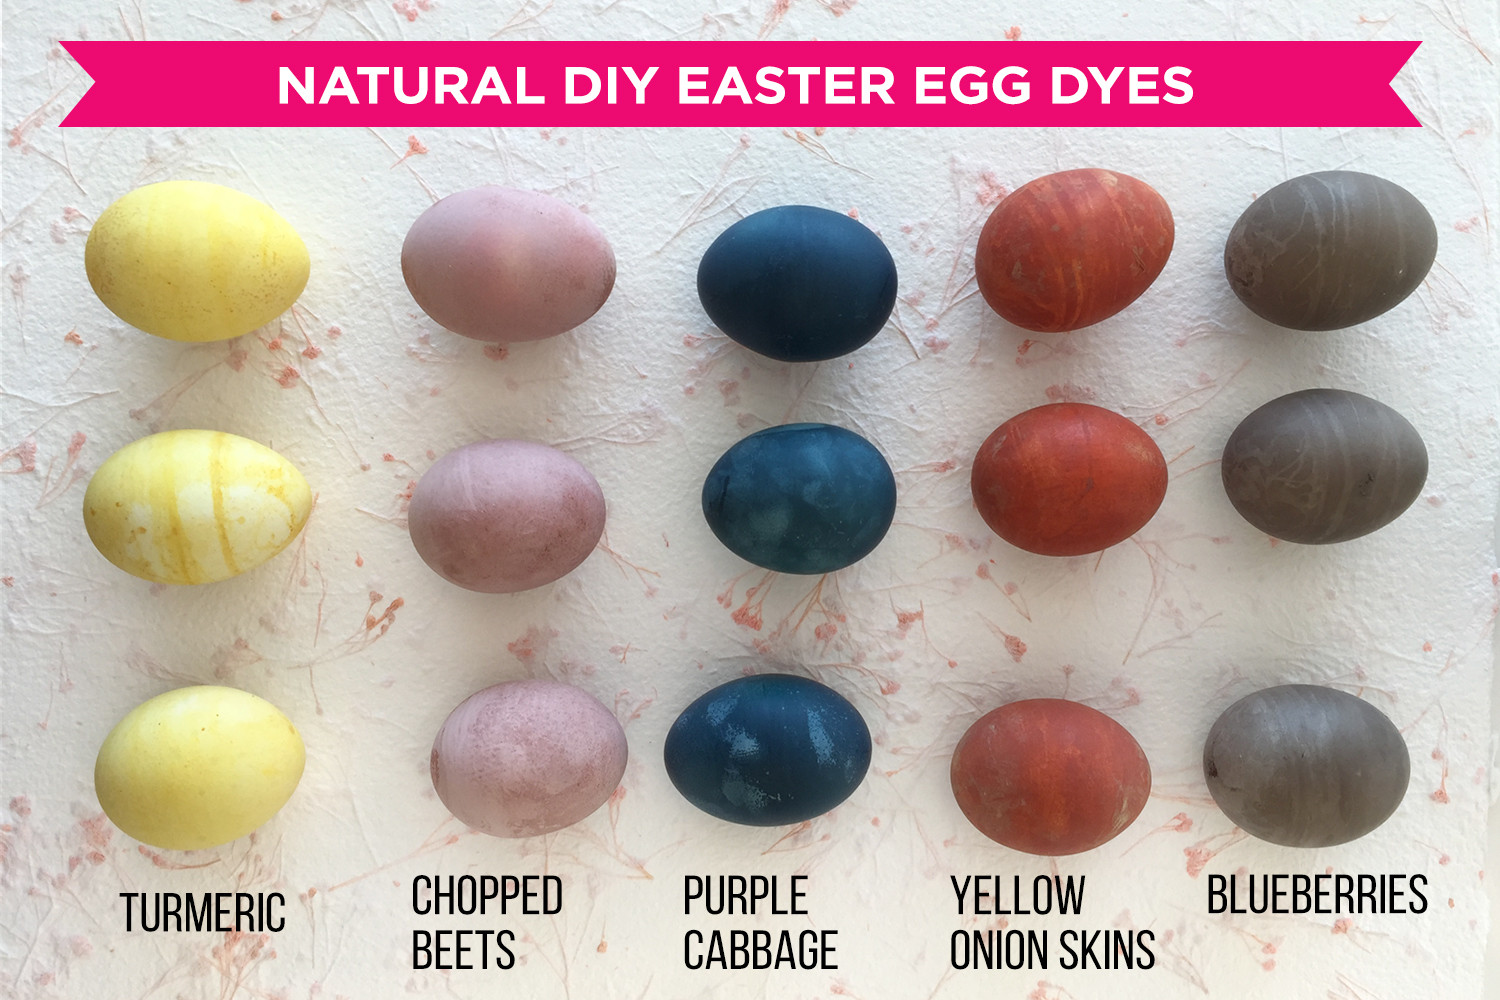 Best ideas about DIY Egg Dye . Save or Pin How to Make Natural Easter Egg Dyes Homemade Egg Dyes Now.